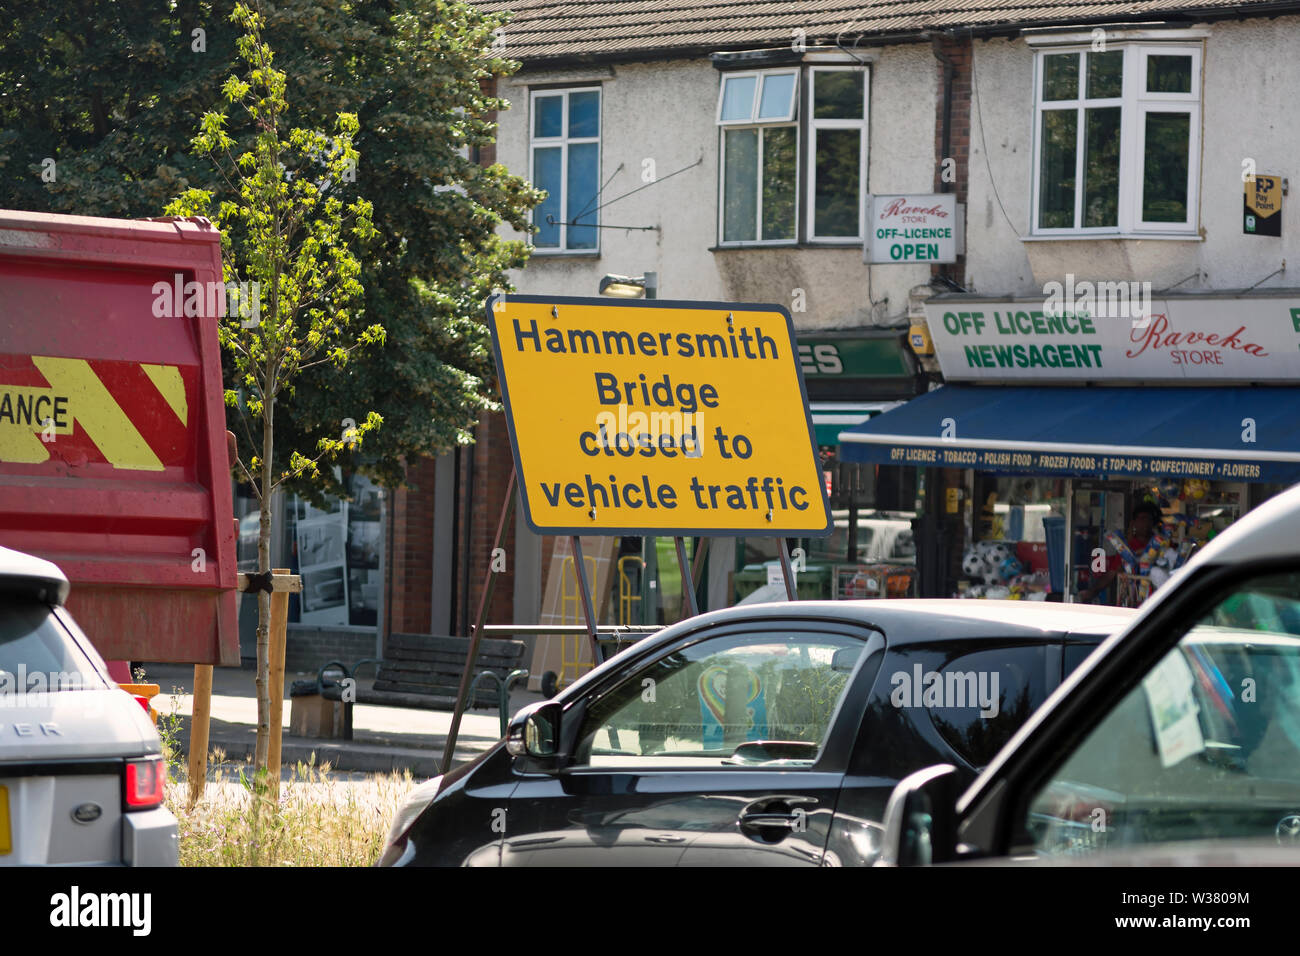 viewed across queueing traffic, hammersmith bridge closed to vehicular traffic sign on the south circular in southwest london, england Stock Photo